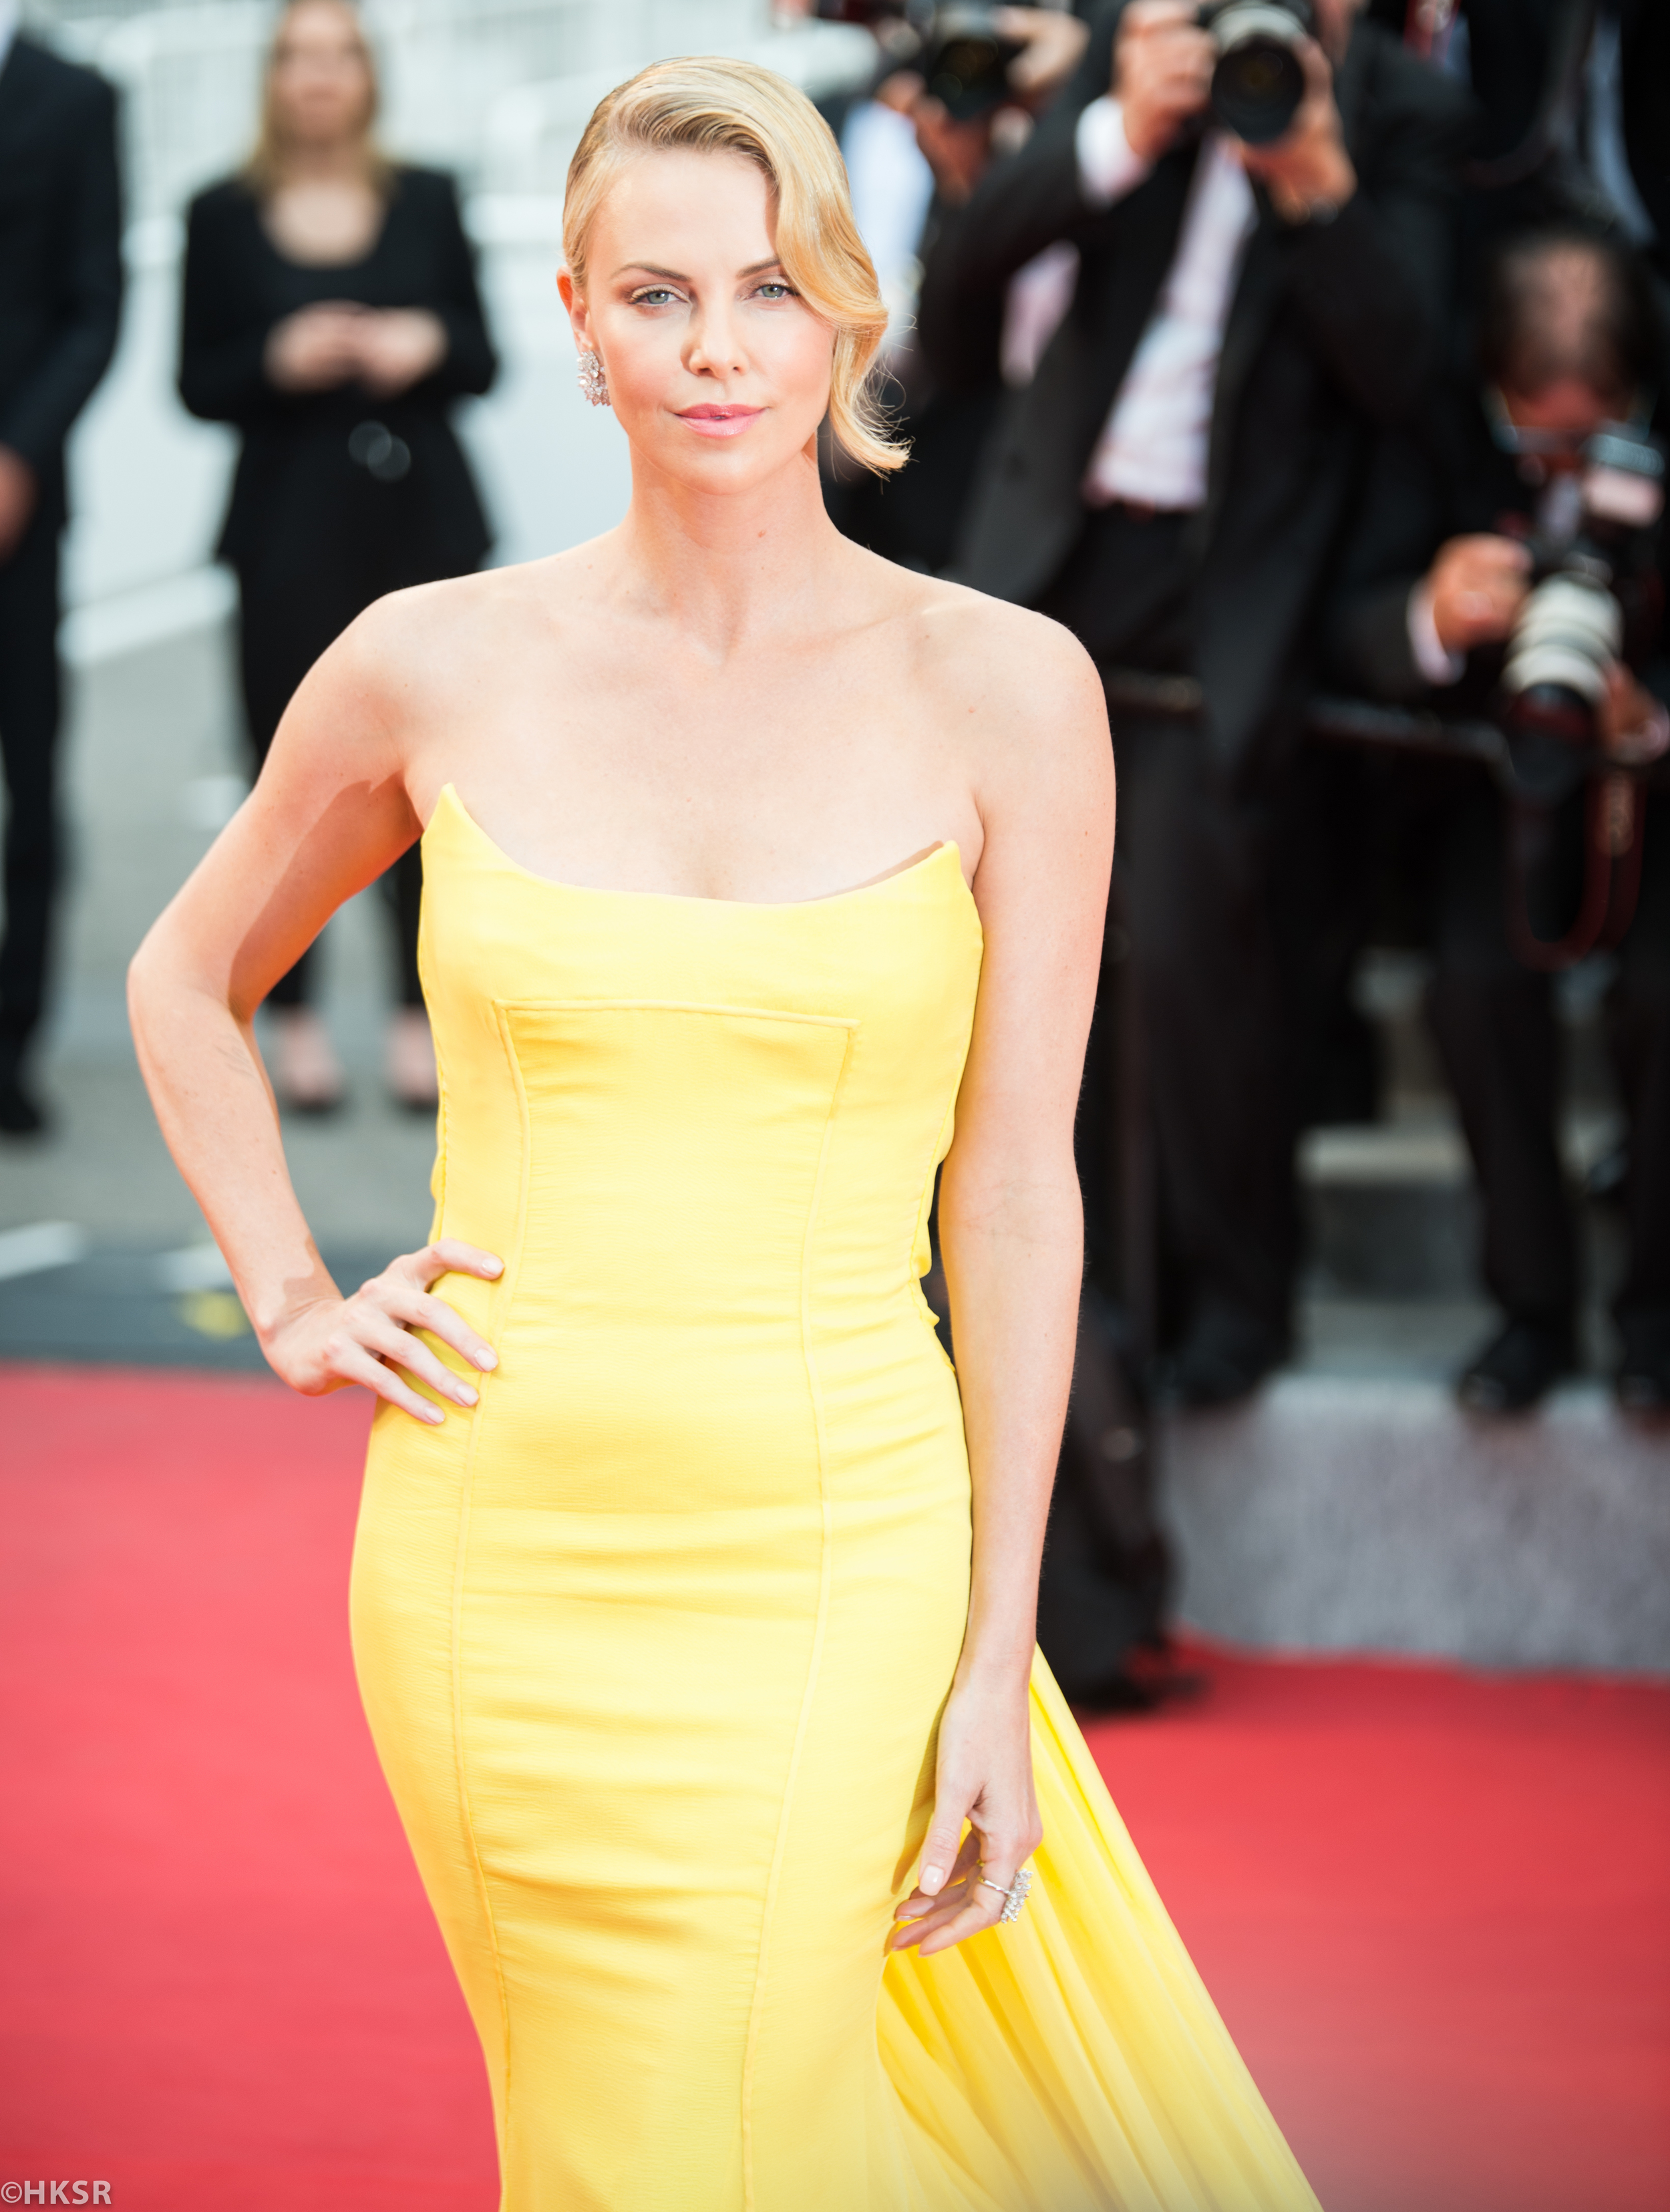 Charlize Theron looked stunning in her yellow Dior gown on the red carpet at Cannes 2015